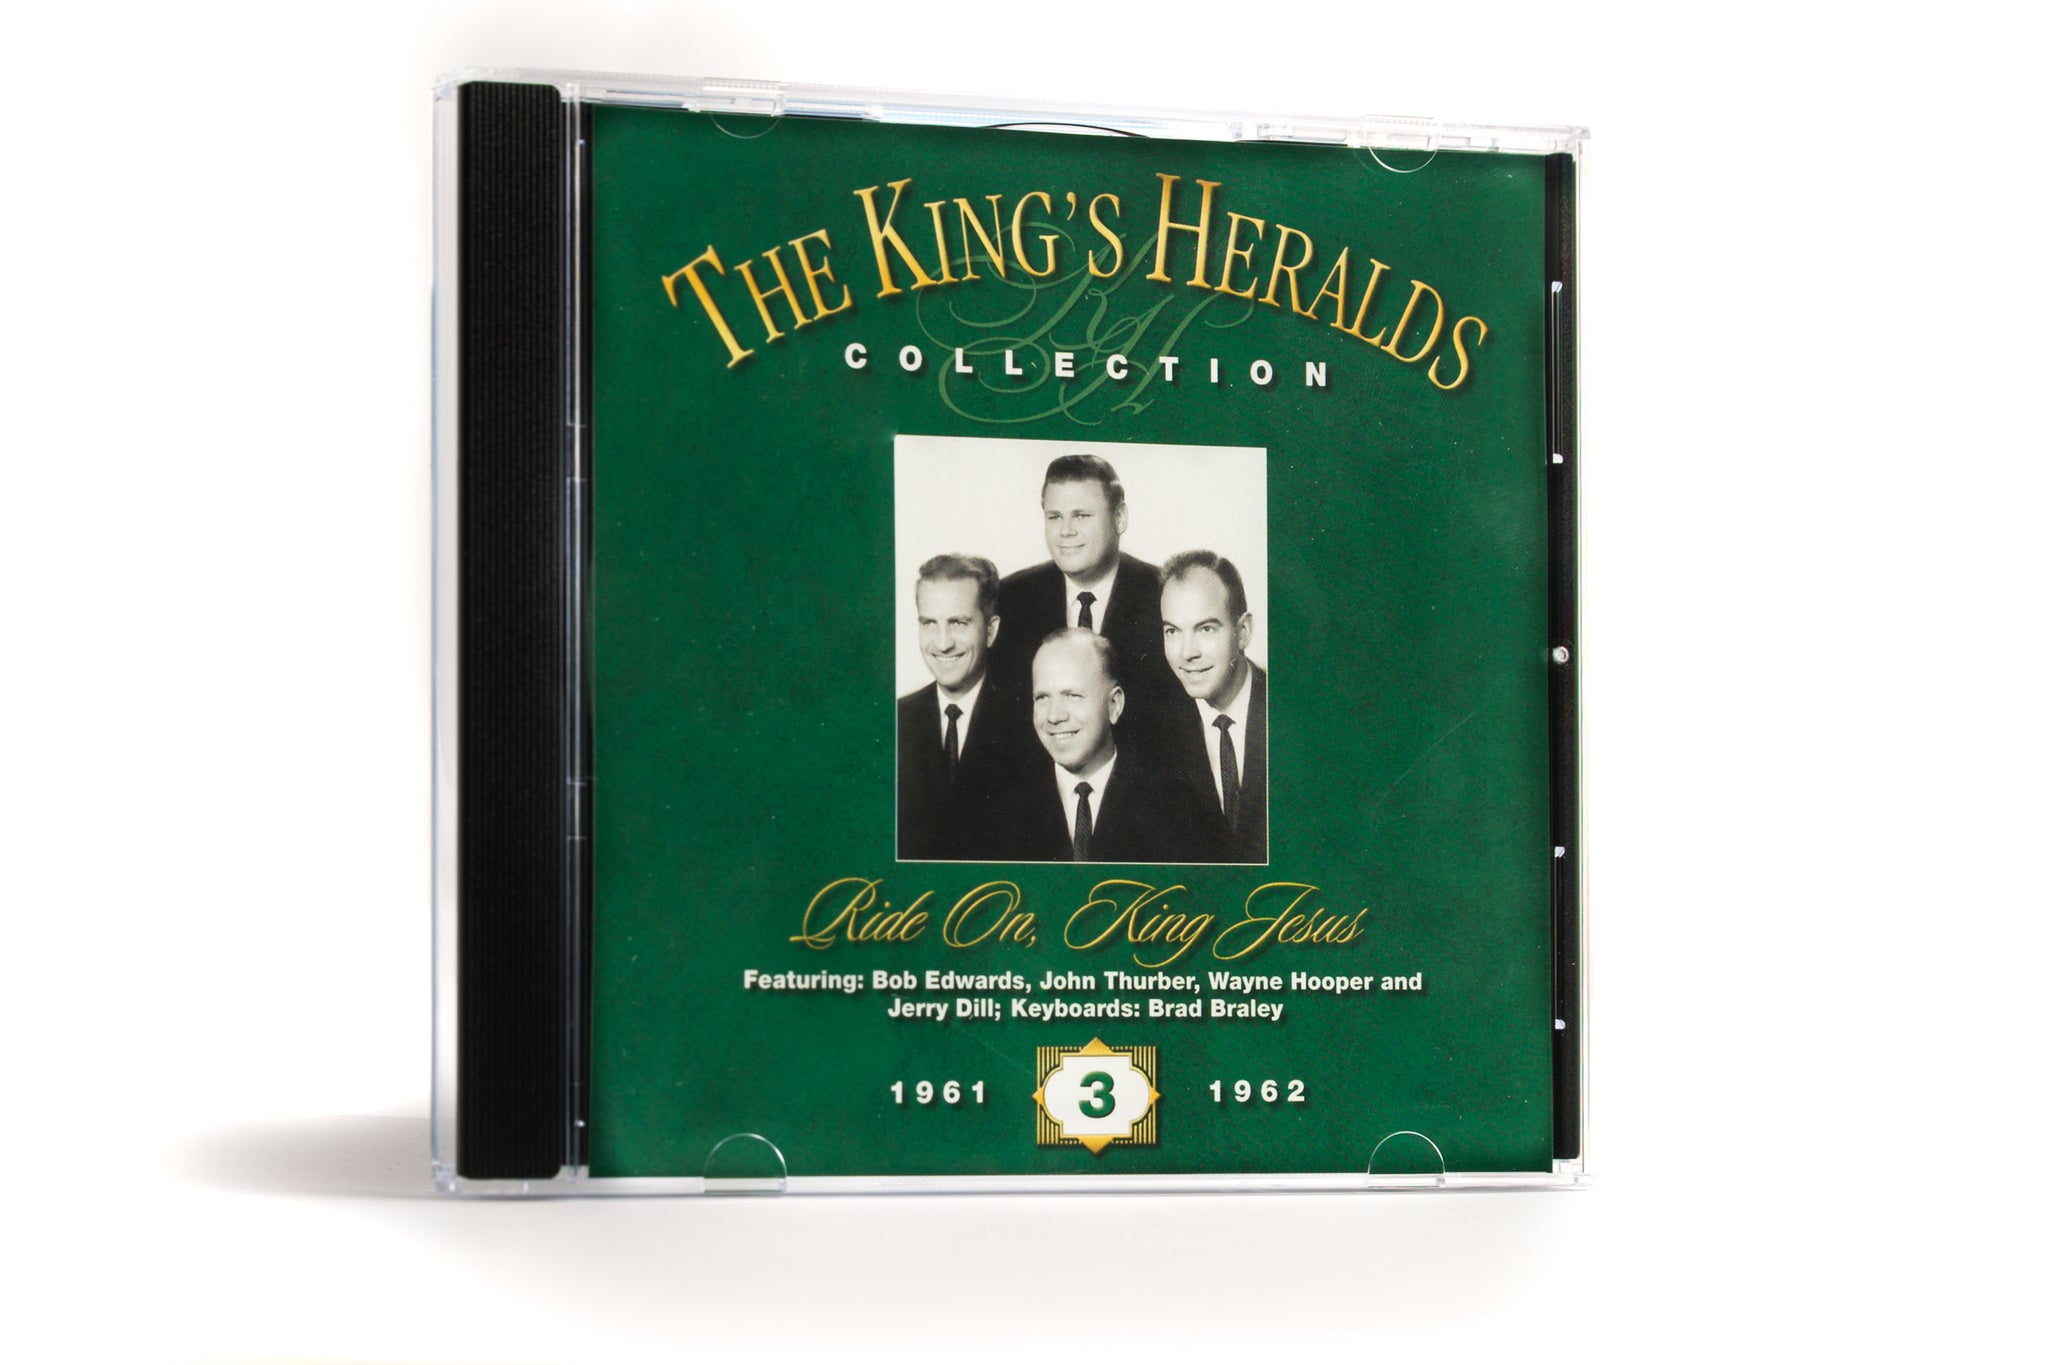 King's Heralds CD Collection - Vol. 3 - Ride On, King Jesus